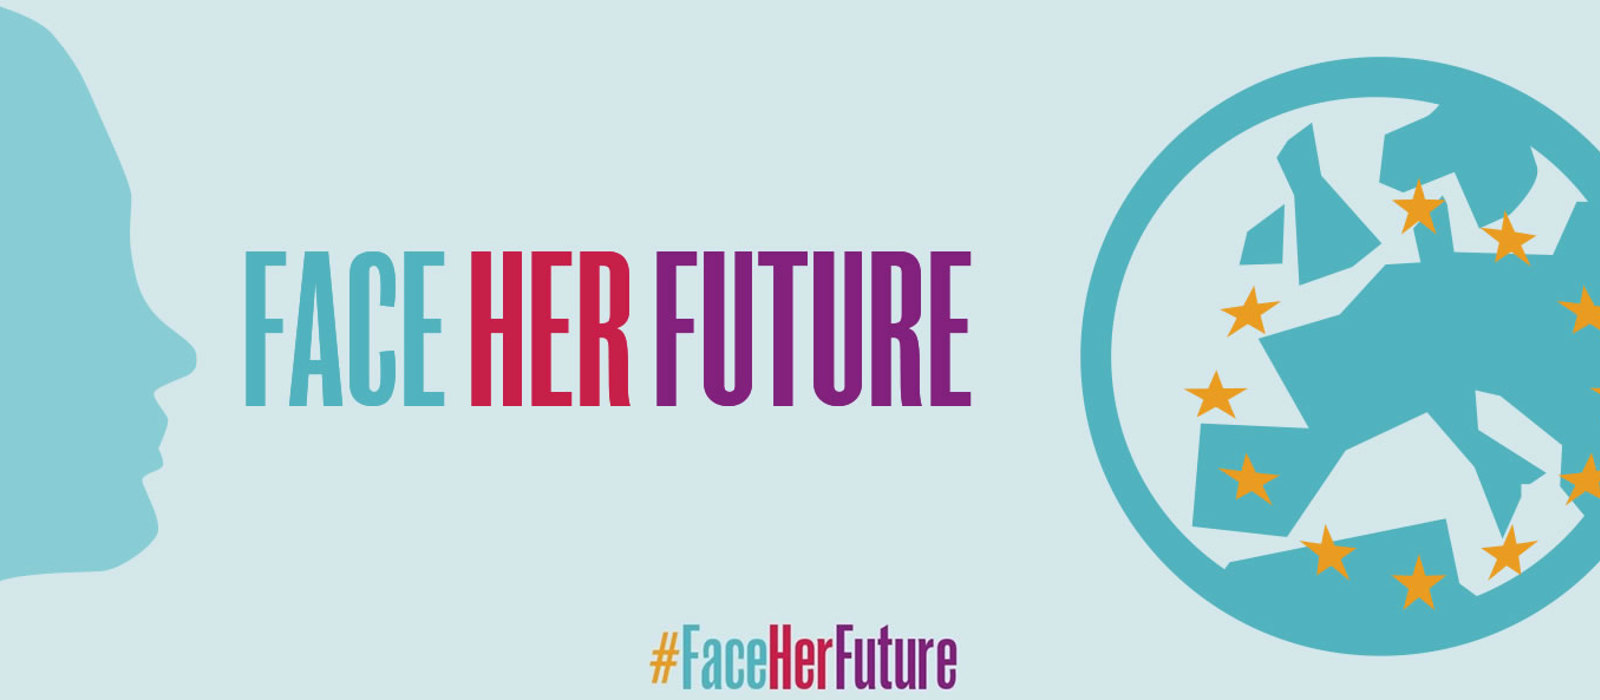 #FaceHerFuture: Questions that remain for women